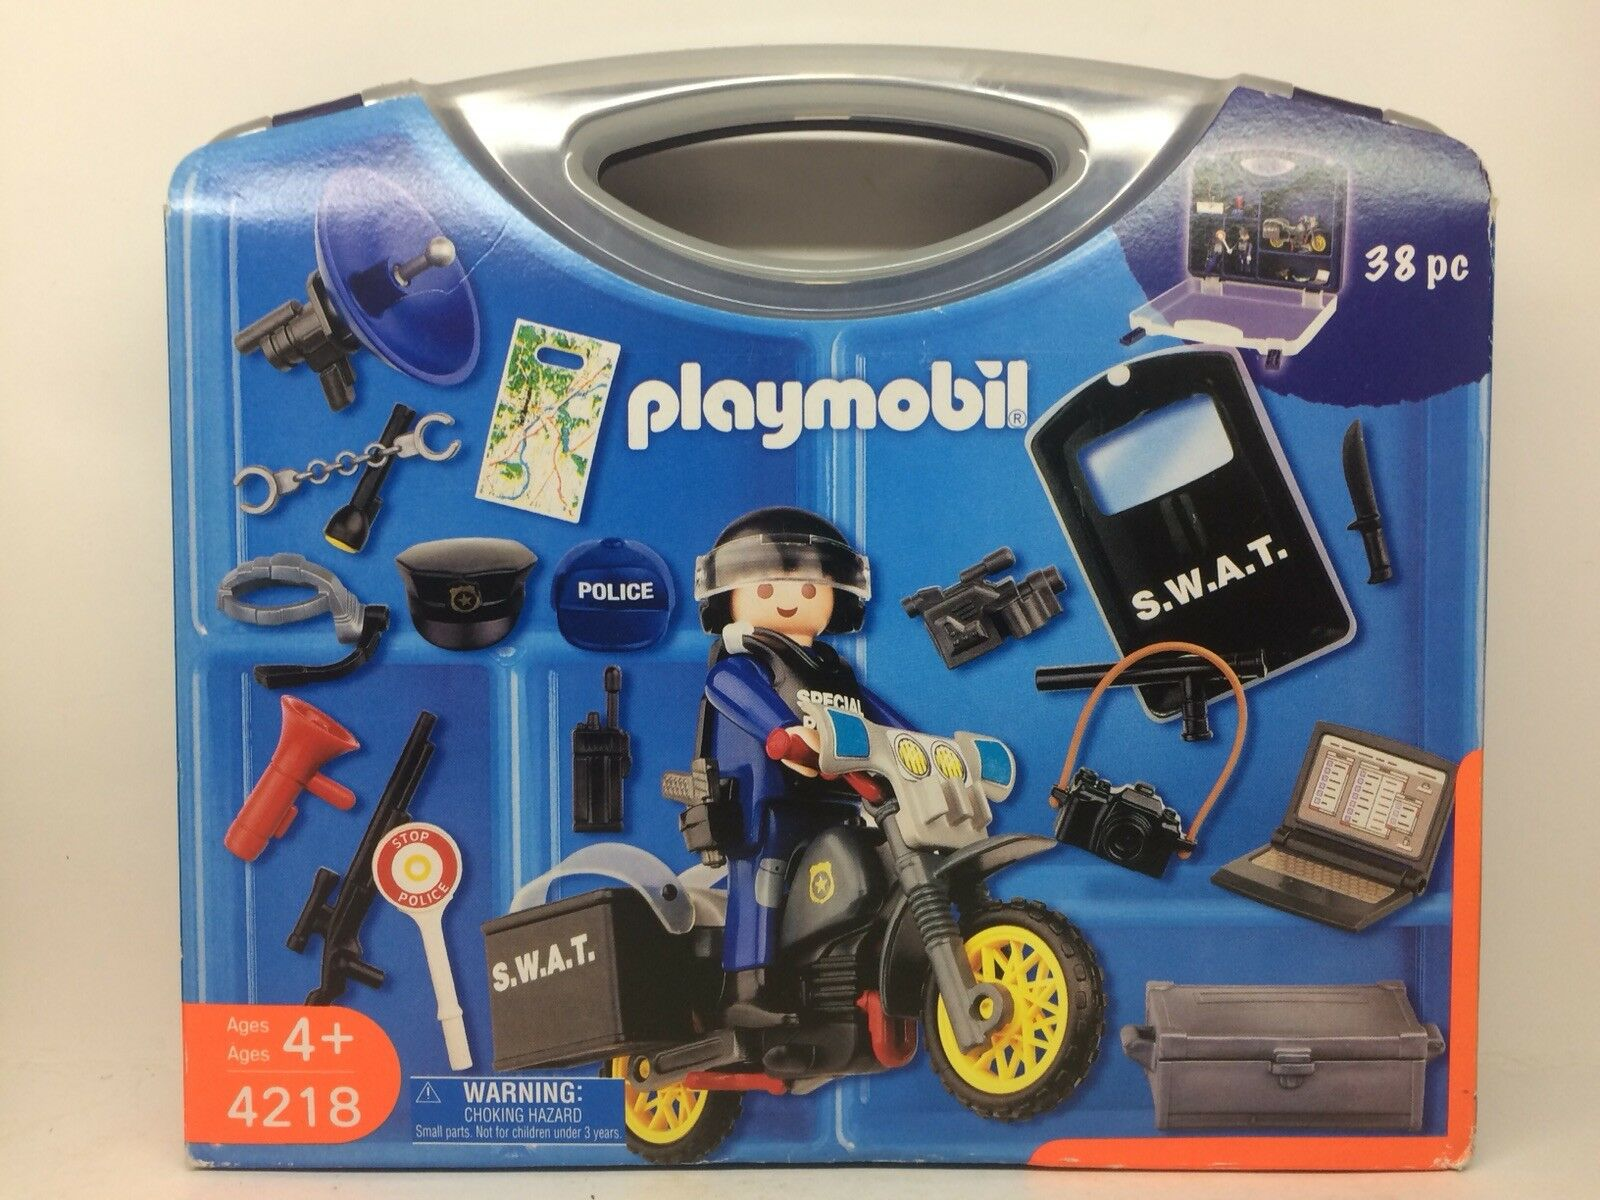 Playmobil 4218 • Swat Police Police Police 38 Pieces With Carrying Case 3972a2